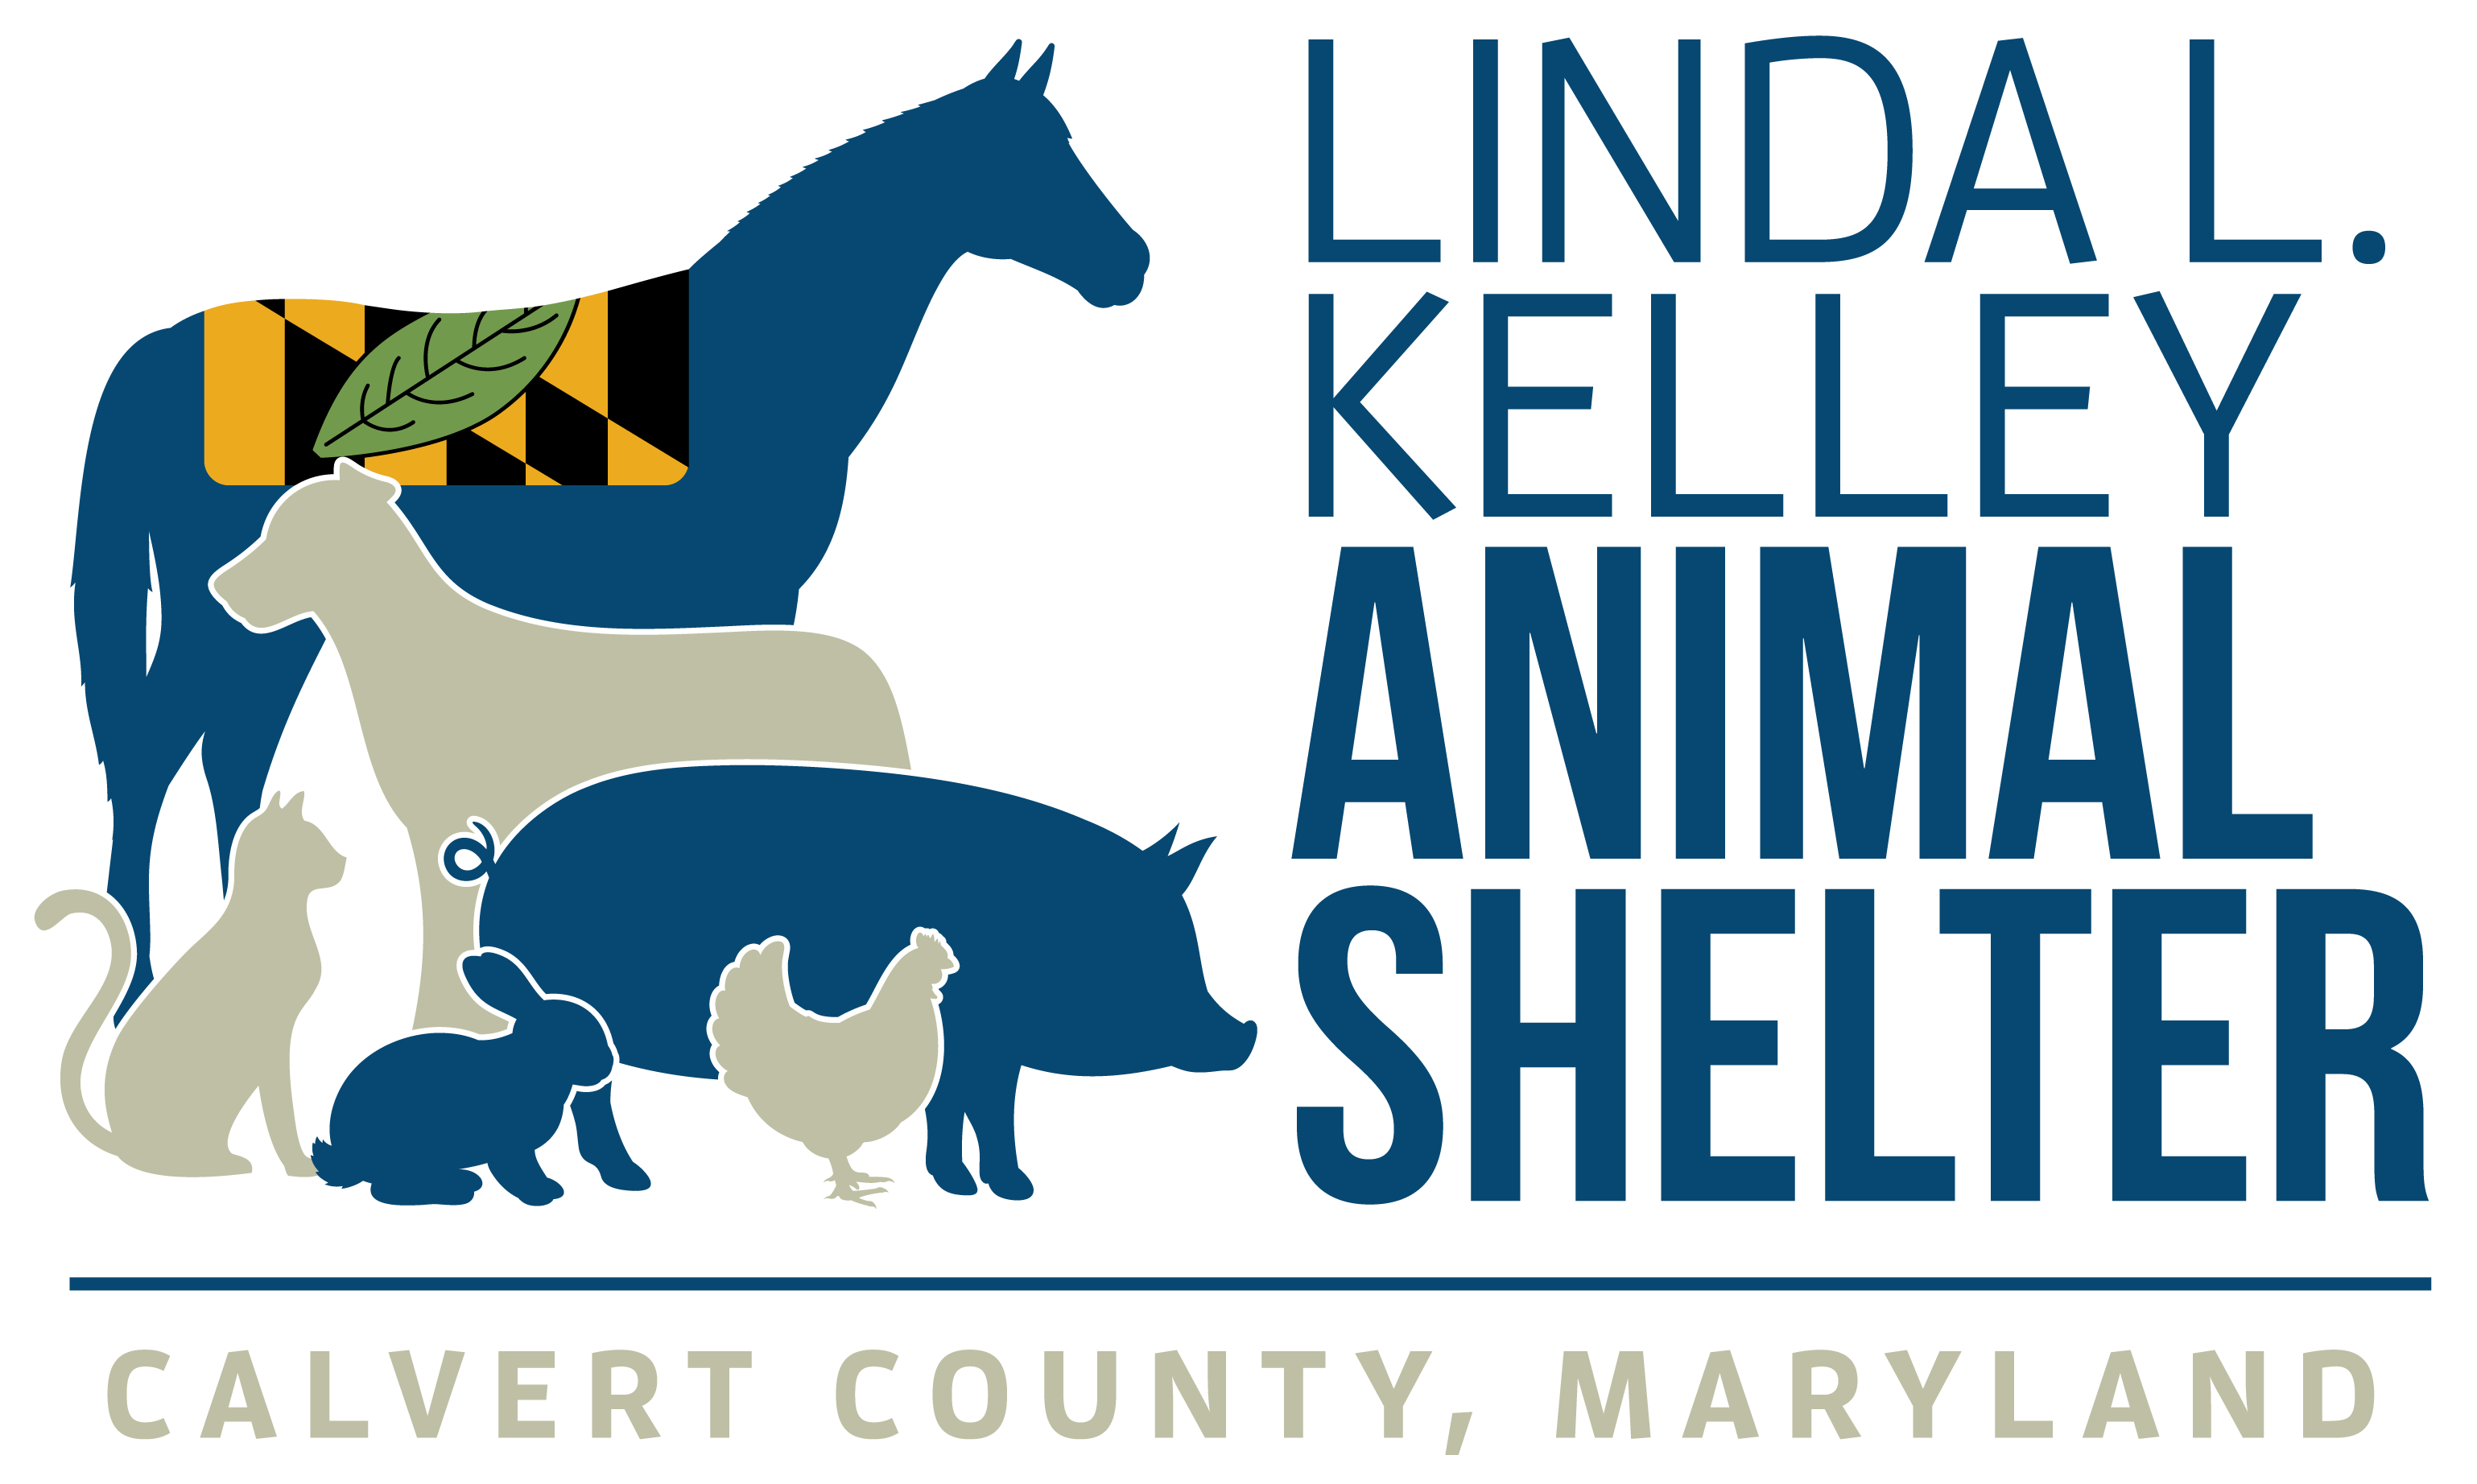 Calvert County Linda L Kelley Animal Shelter Logo Opens in new window